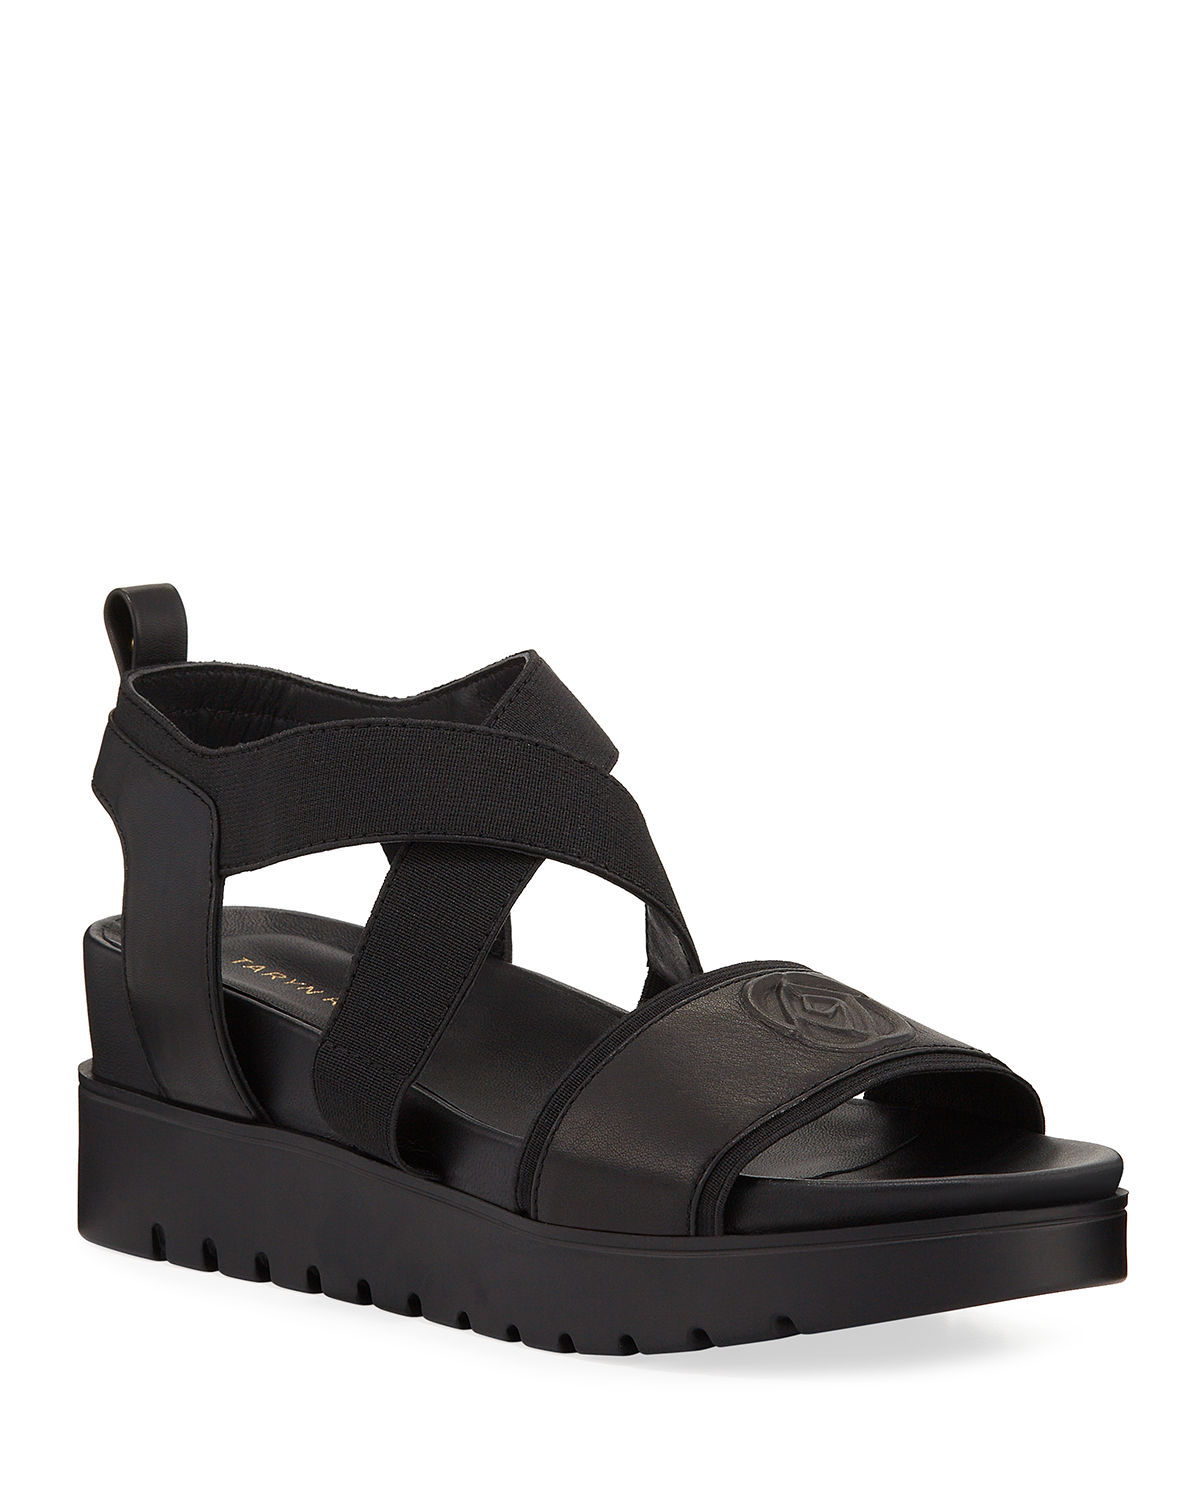 Stephanie Leather Wedge Comfort Sandals by Taryn Rose